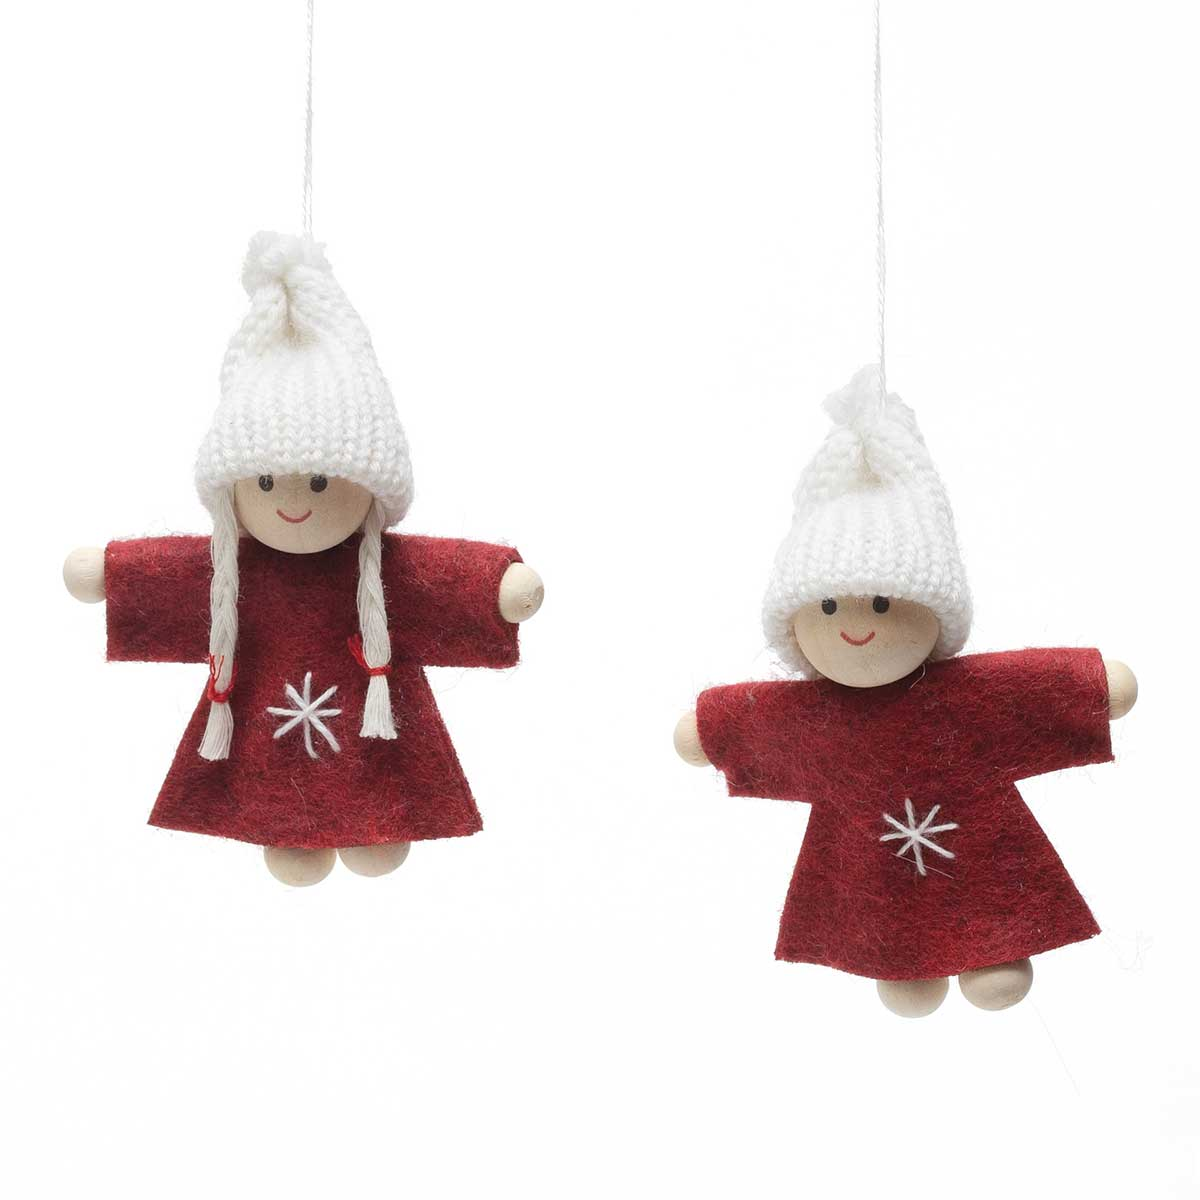 RED/WHITE BOY & GIRL ORNAMENT